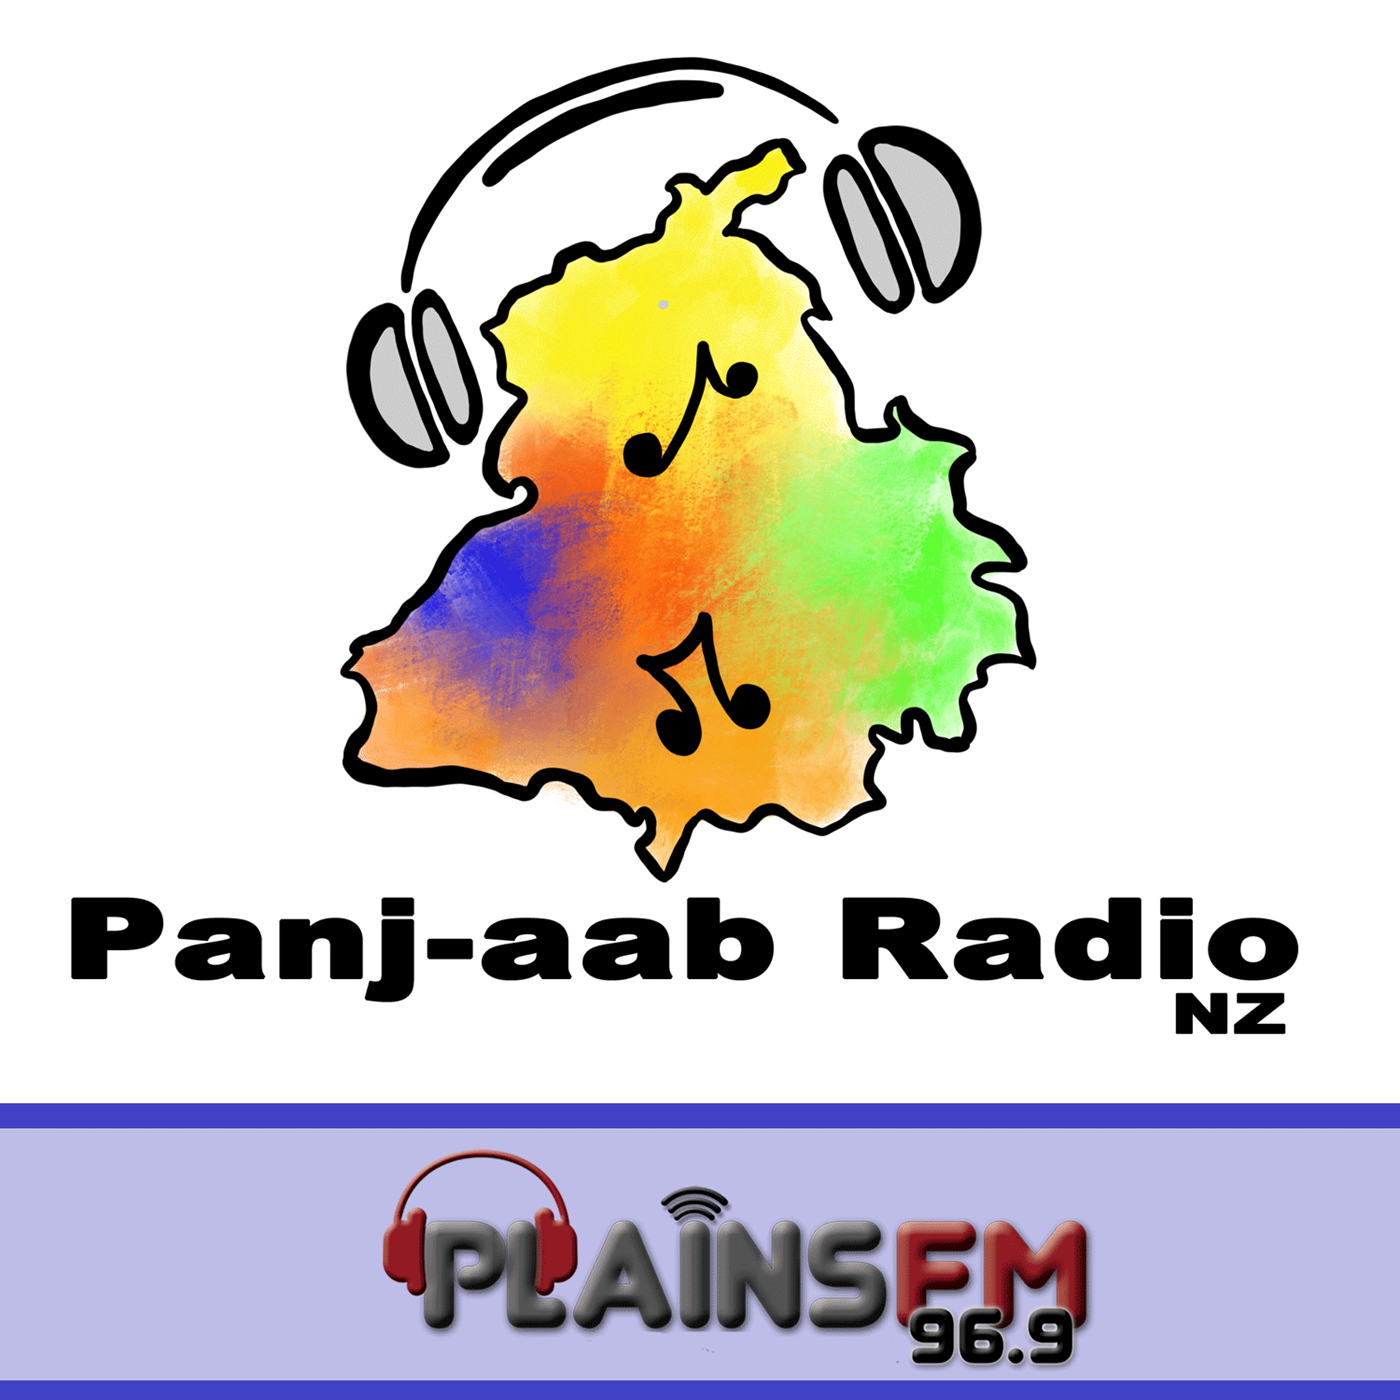 Panj-aab Radio NZ